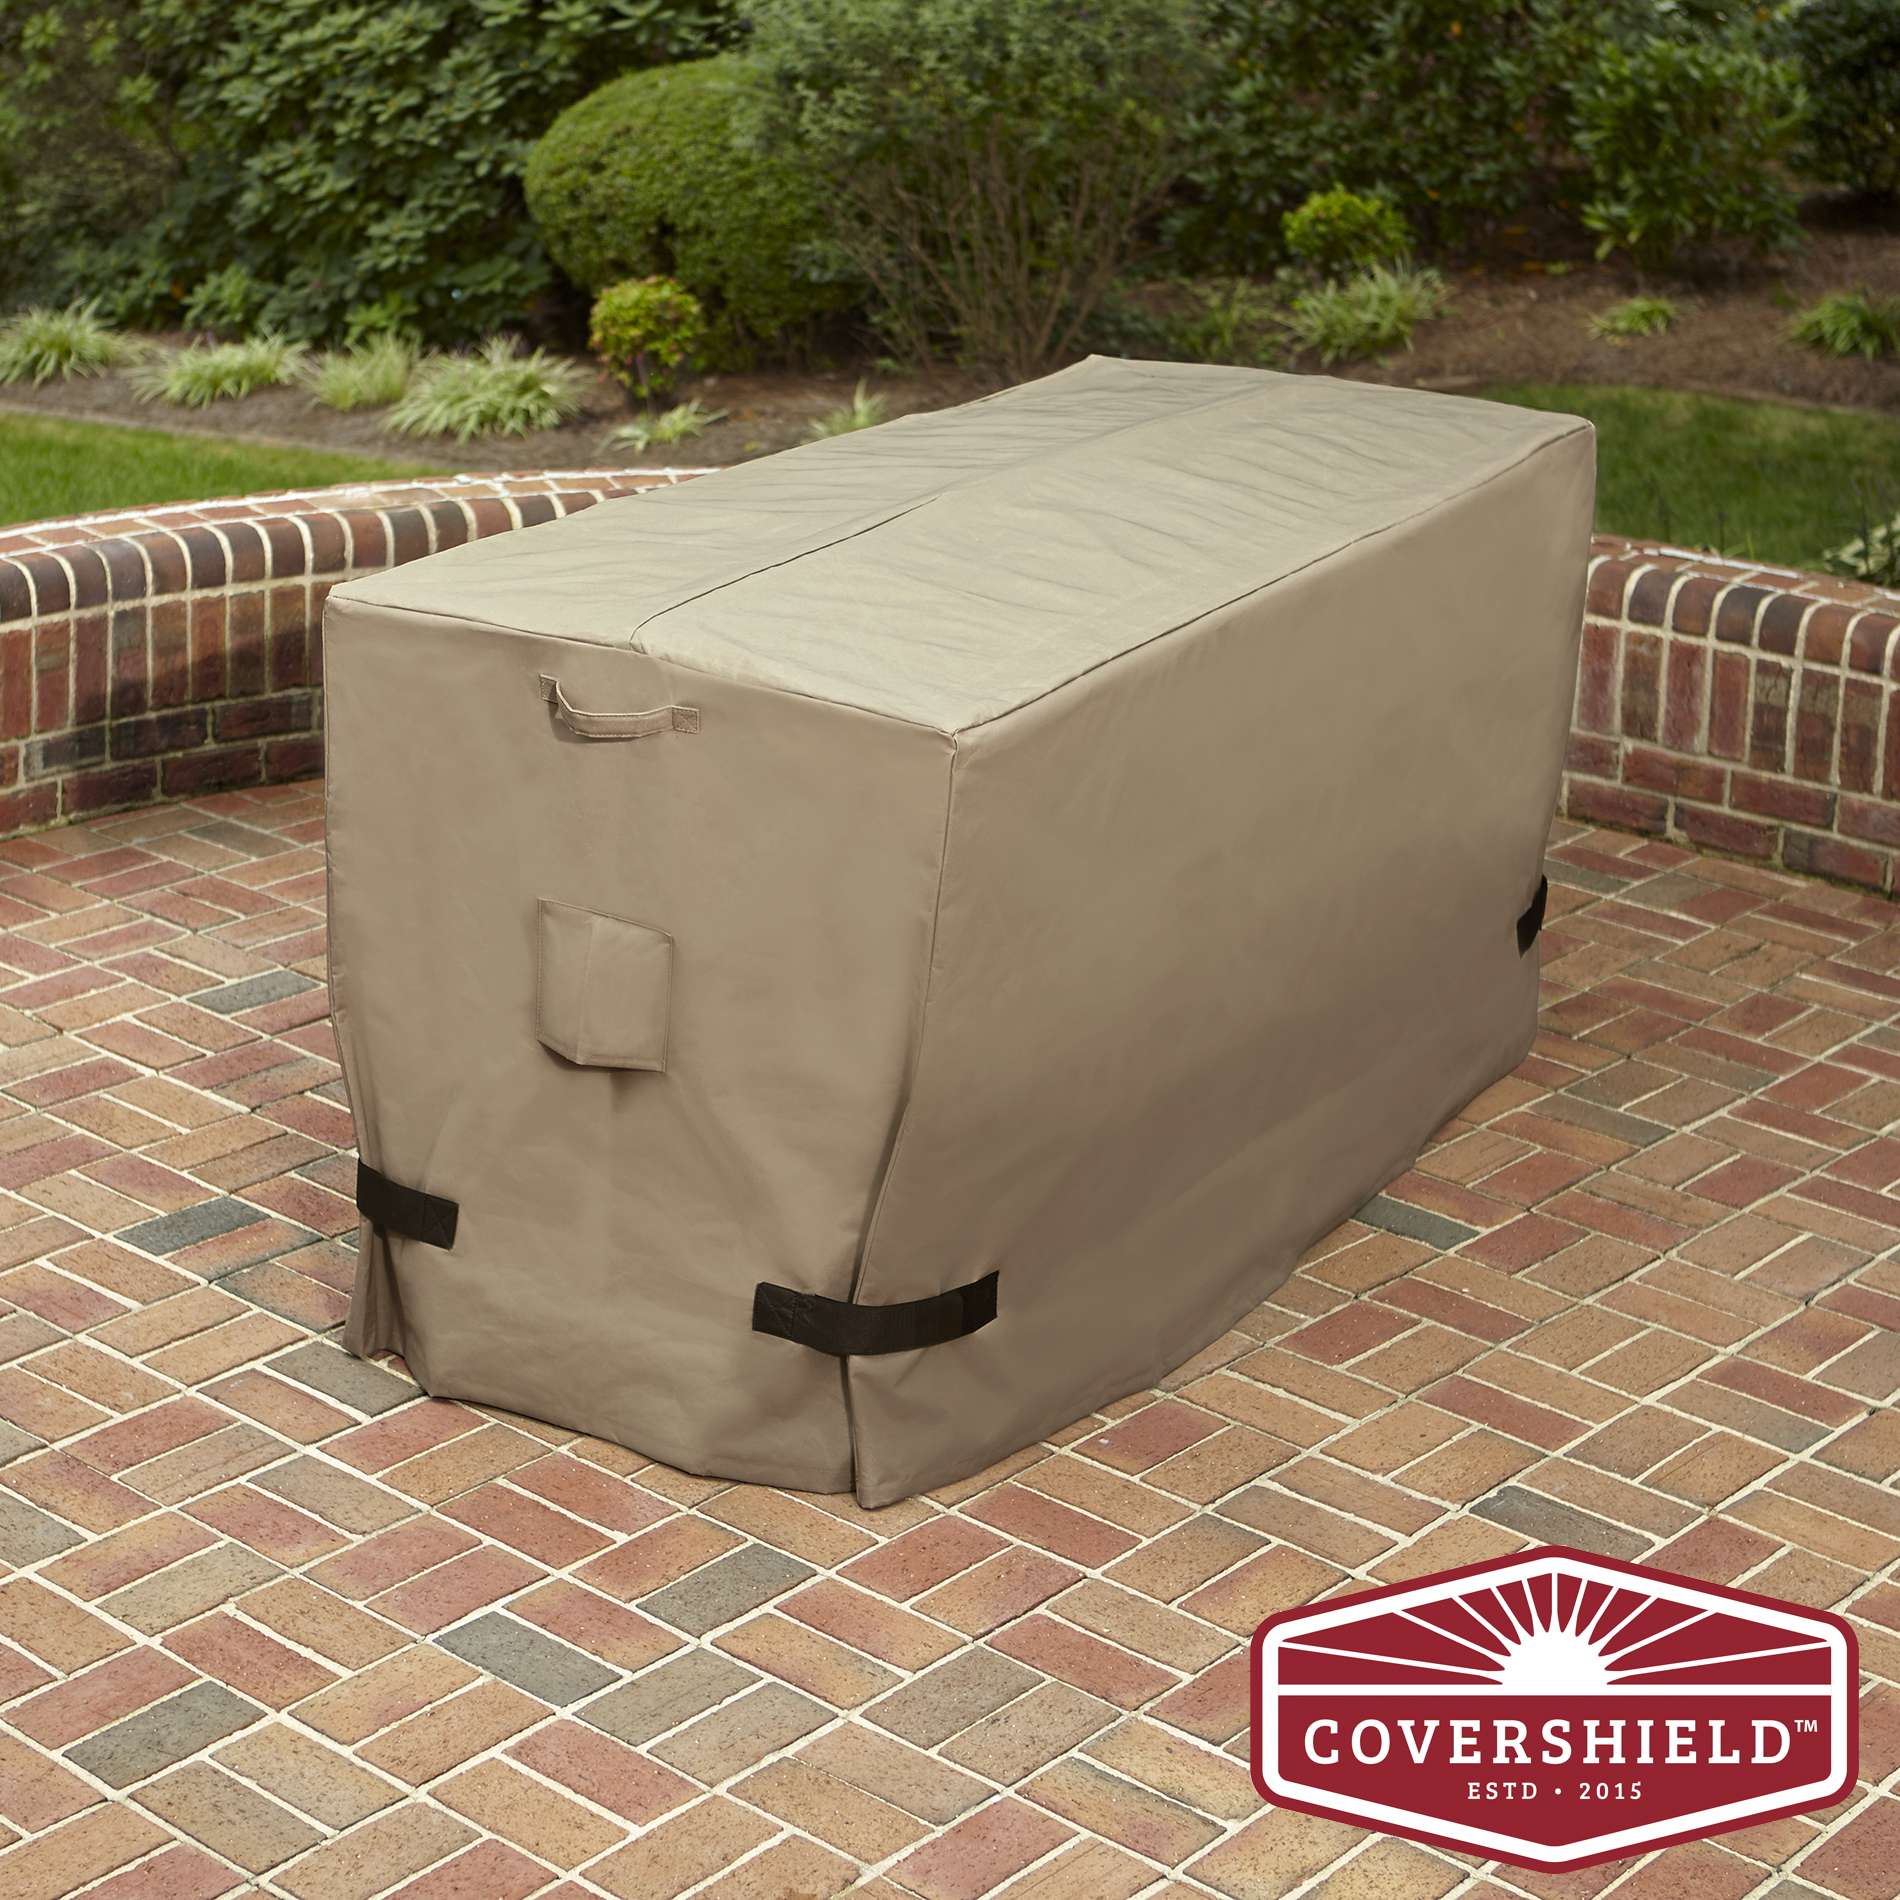 Covershield Bistro Cover- Premium - Outdoor Living Patio